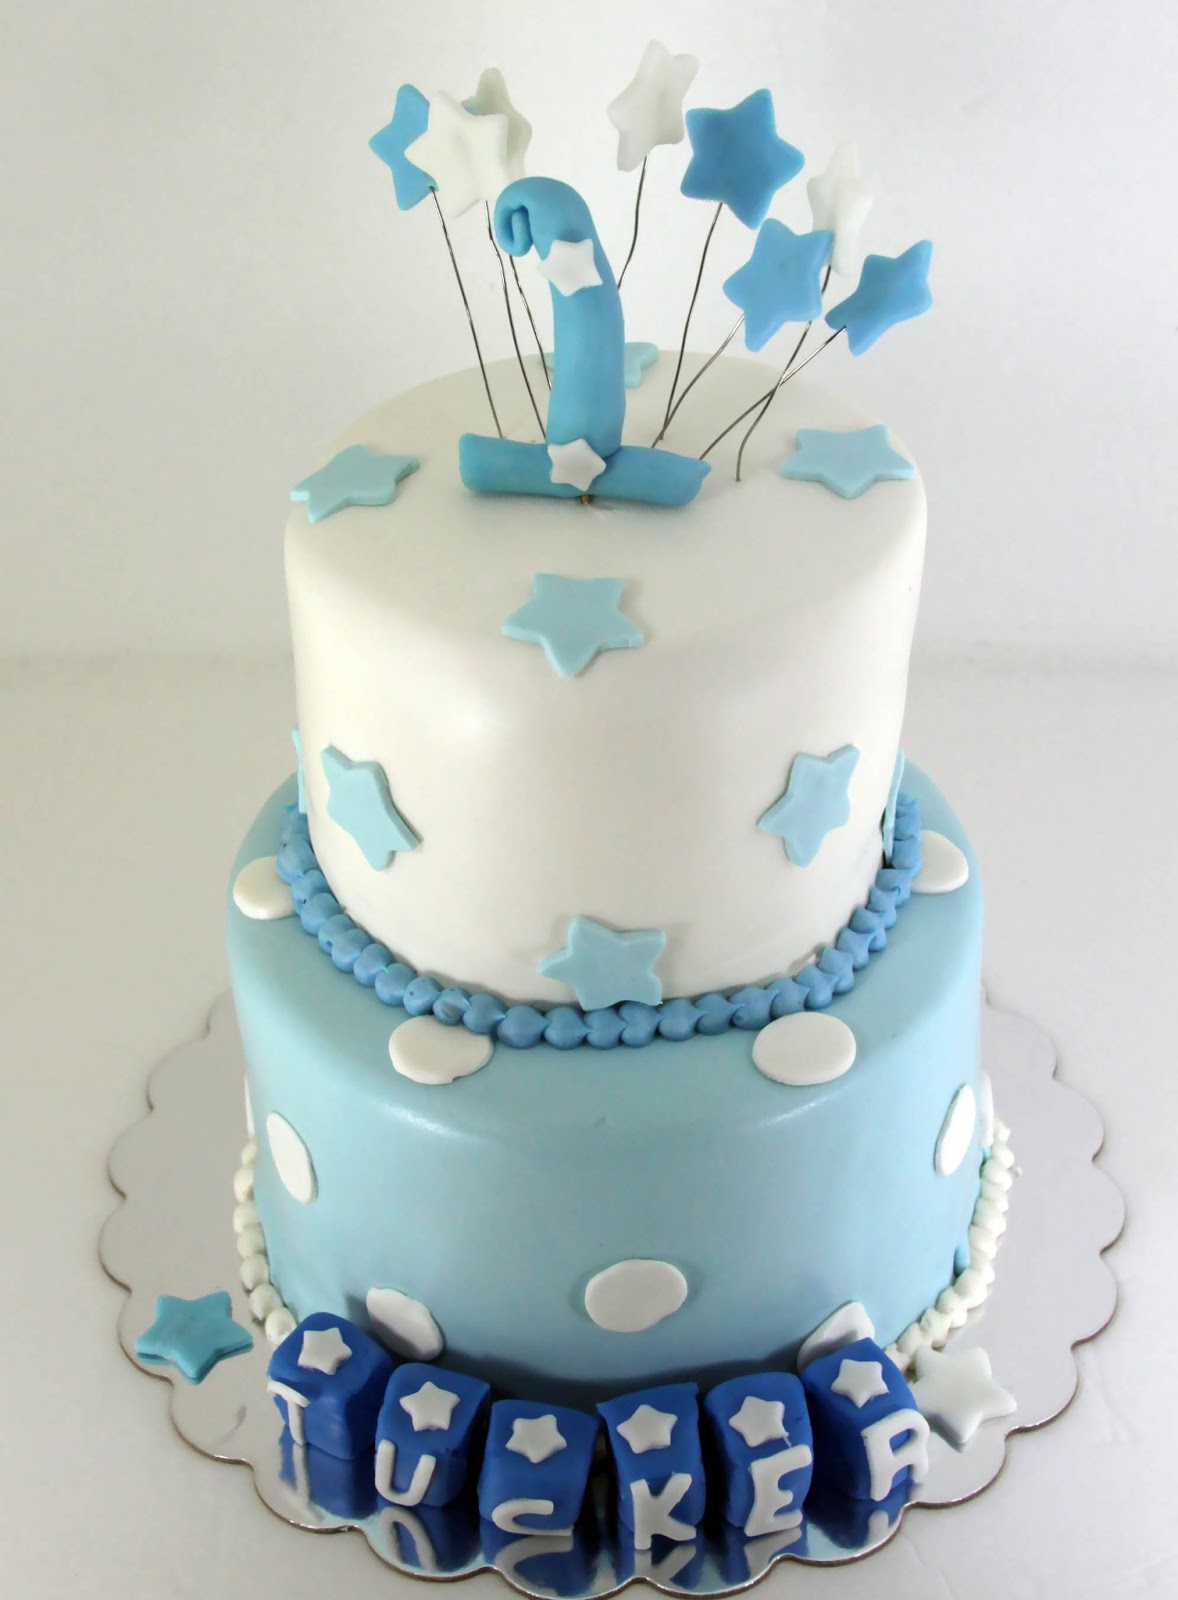 Birthday Cake Ideas For Baby S First Birthday : Tastefully Done: Baby Boy Blue 1st Birthday Cake